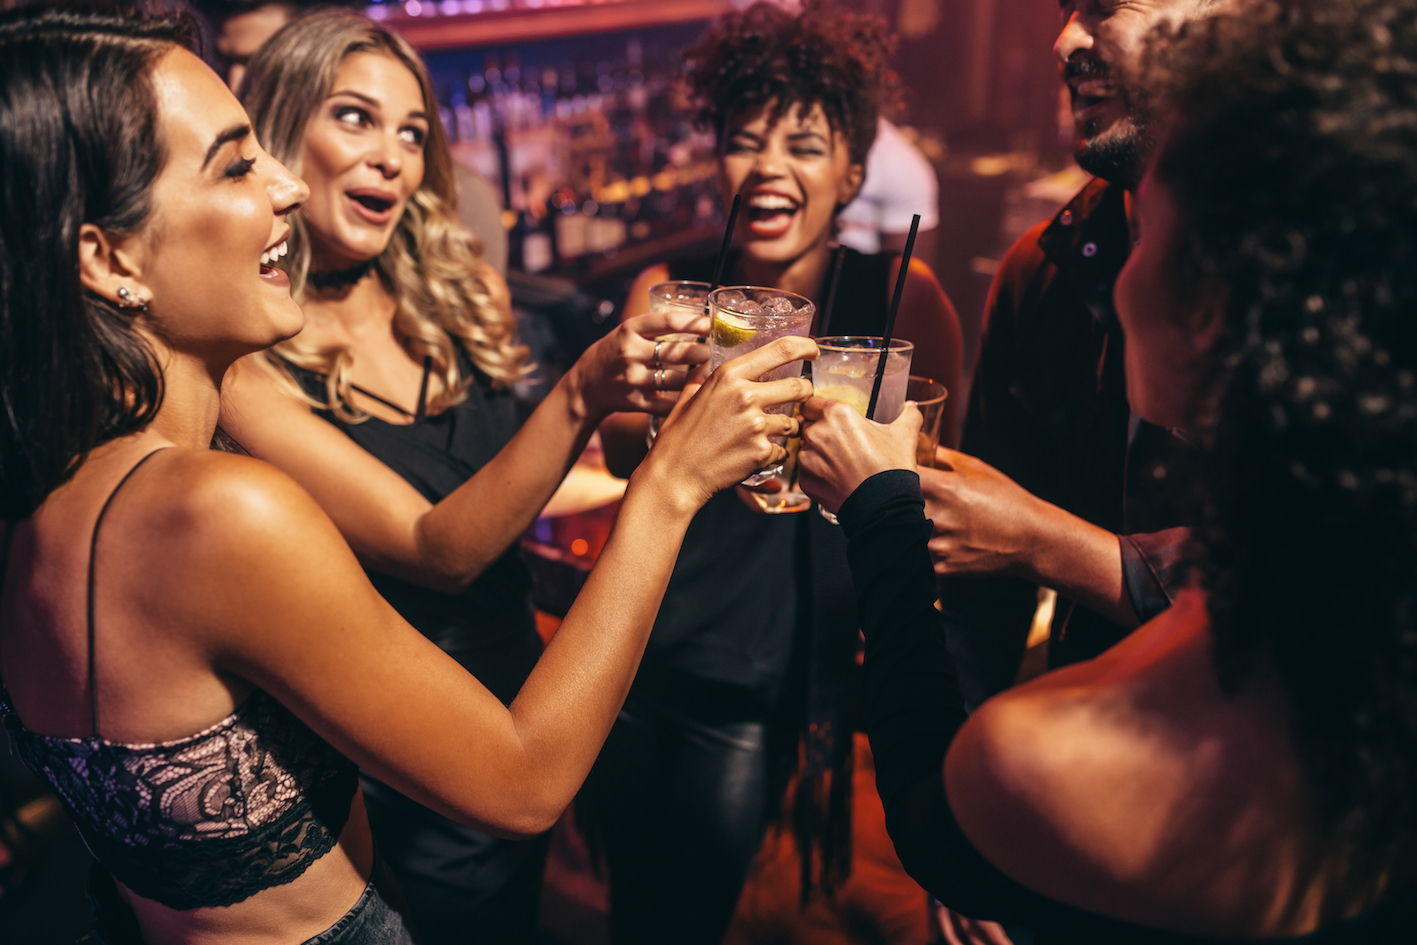 Even moderate alcohol drinking can cause a decline in mental skills, according to a new study from the University of Oxford.